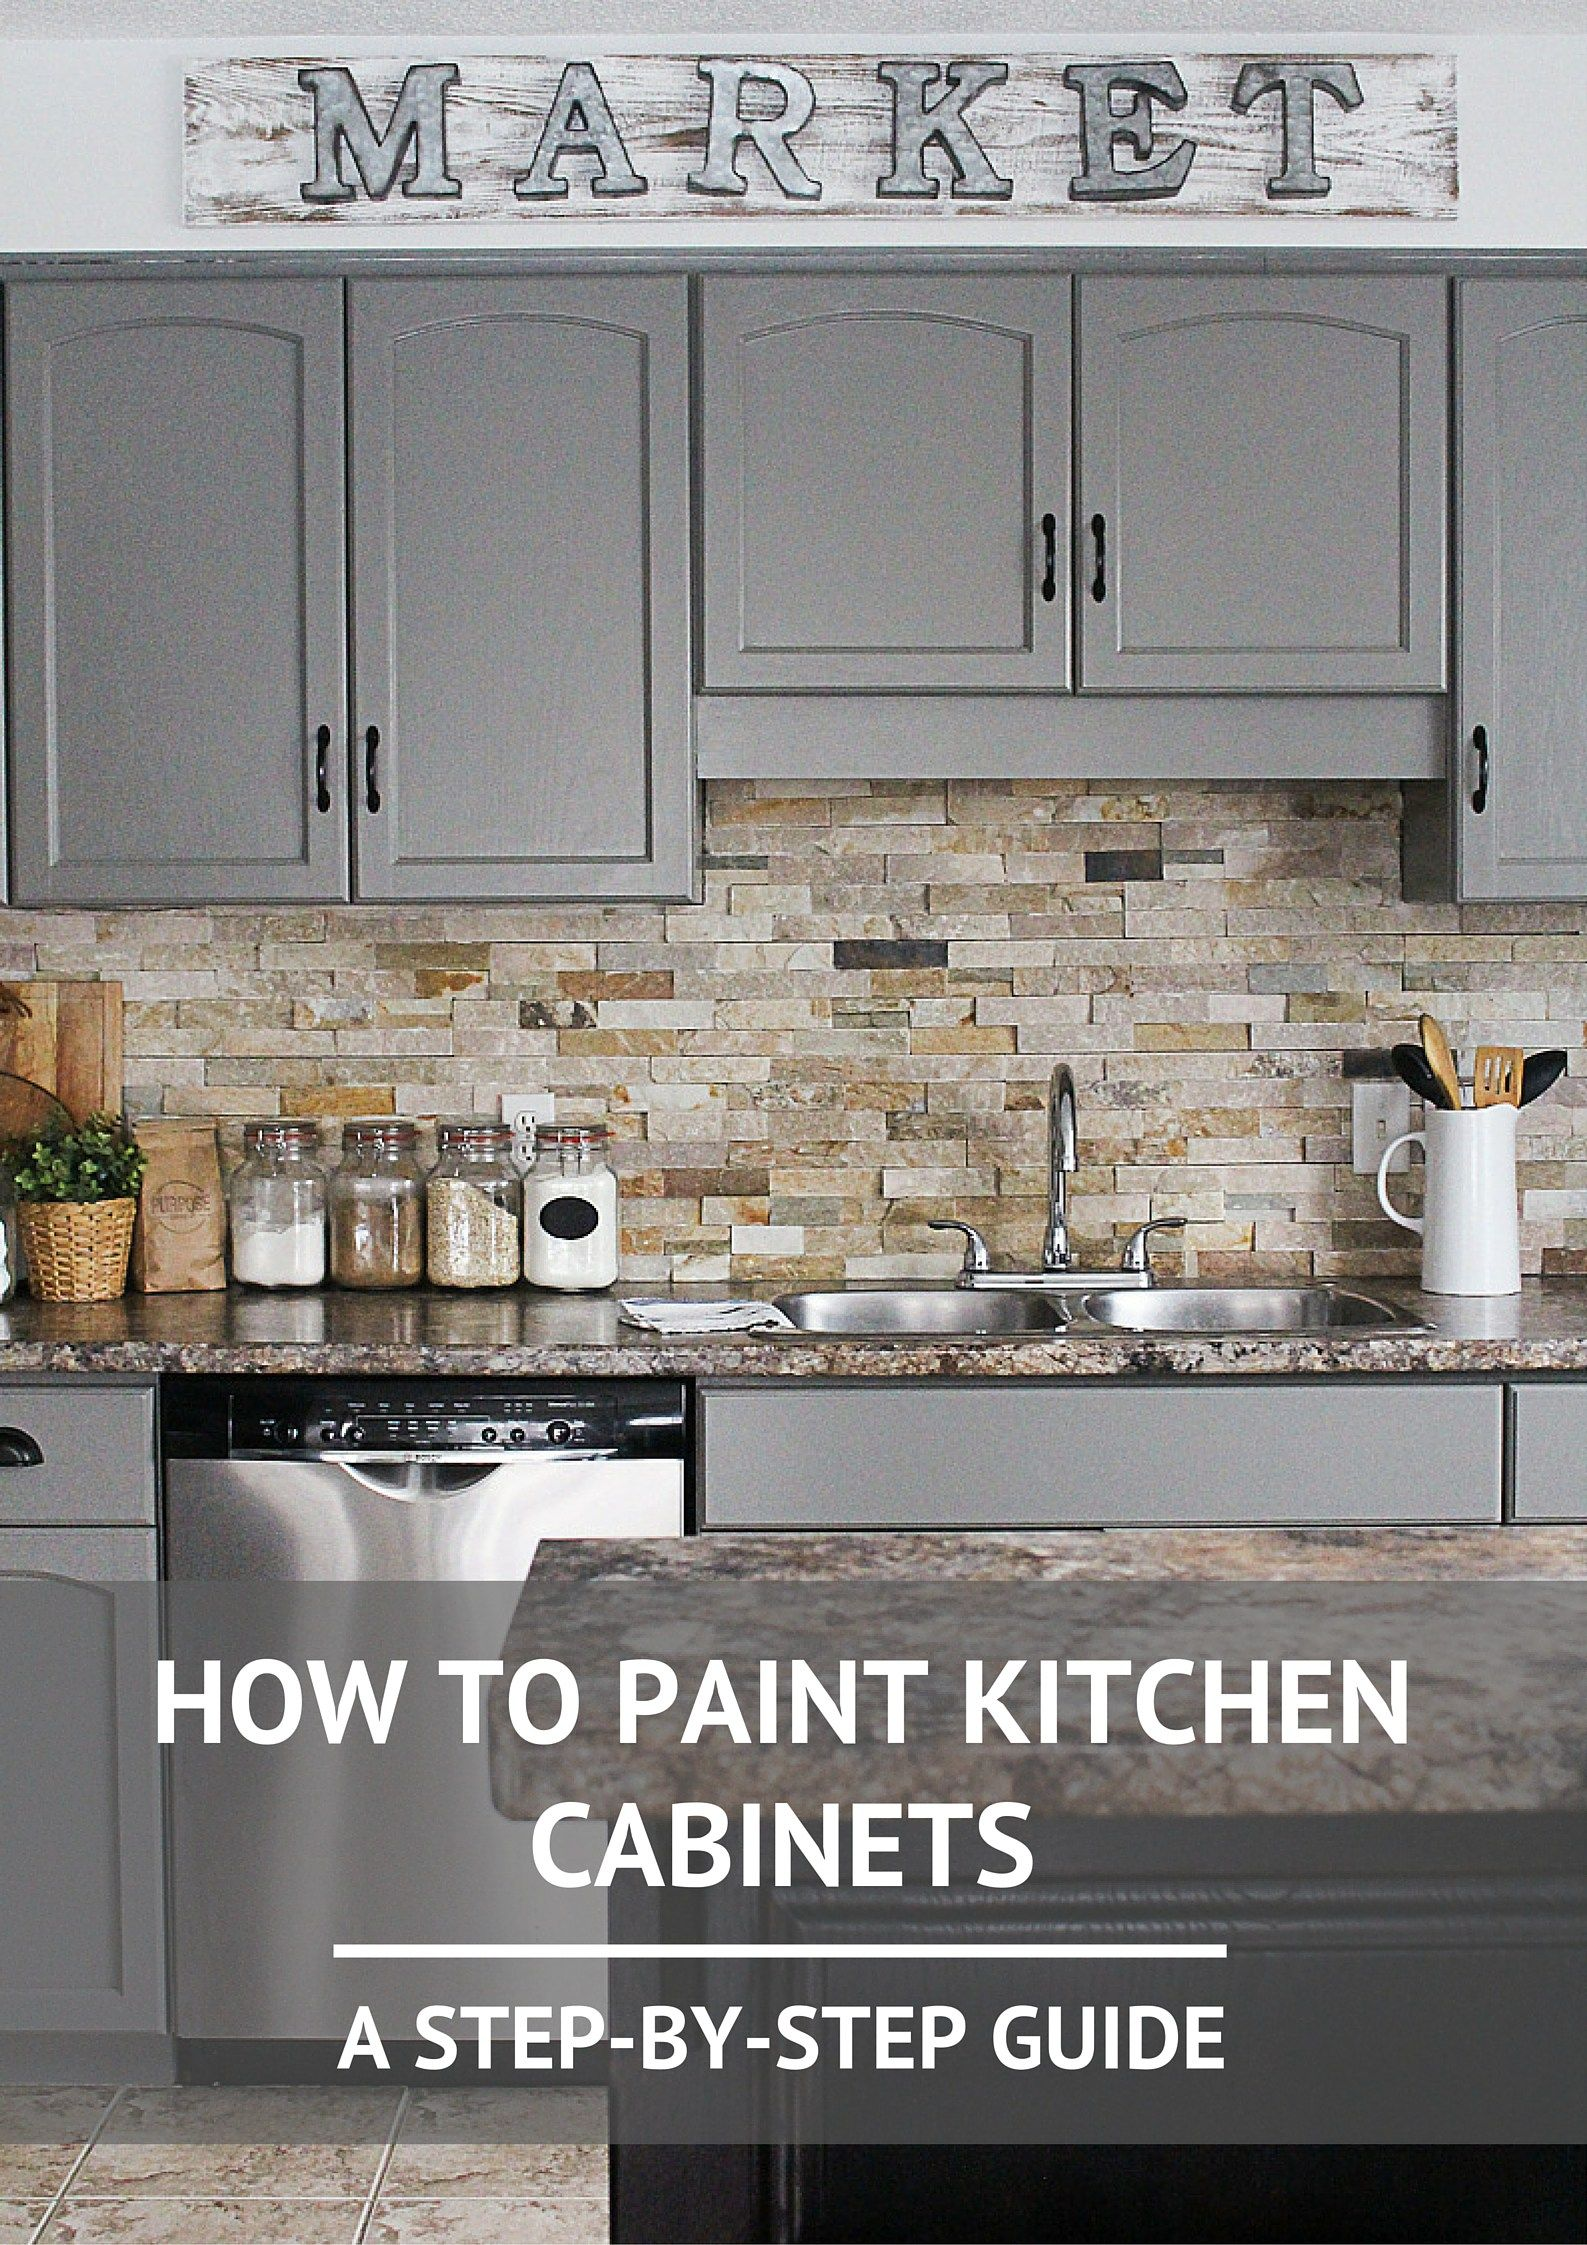 How To Paint Kitchen Cabinets Refurbished CabinetsKitchen Redo Colors